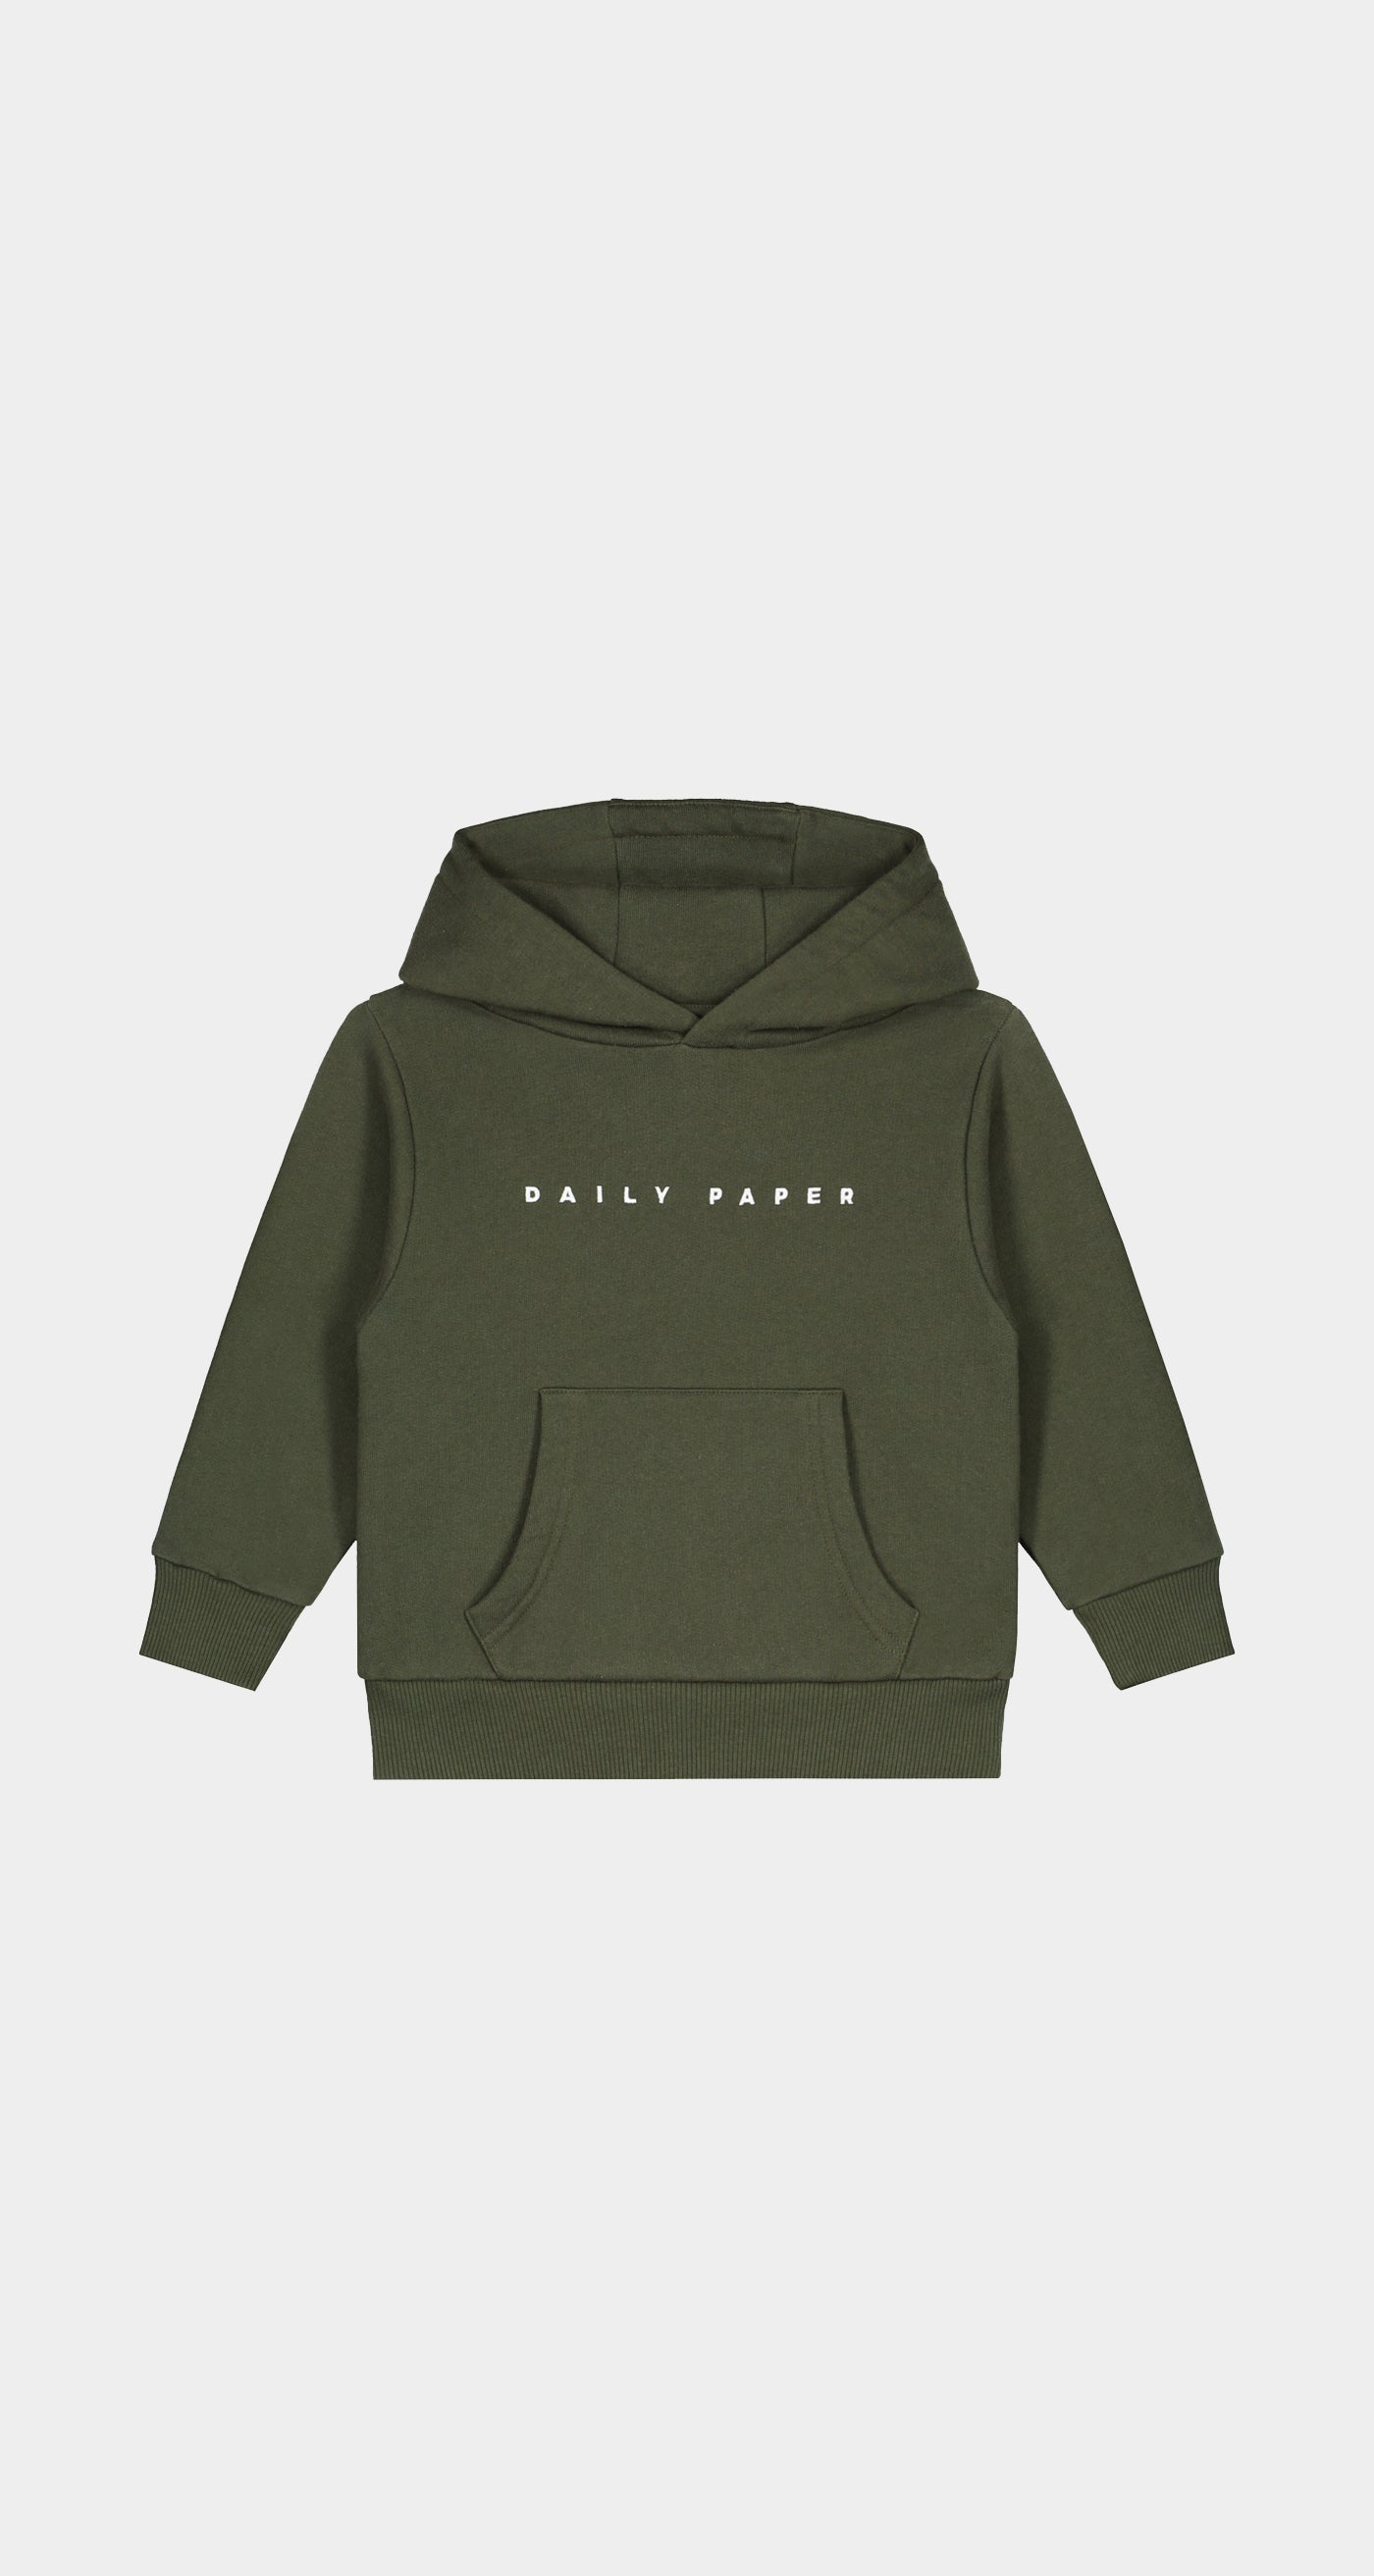 Daily Paper - Forest Green Kids Alias Hoody - Front